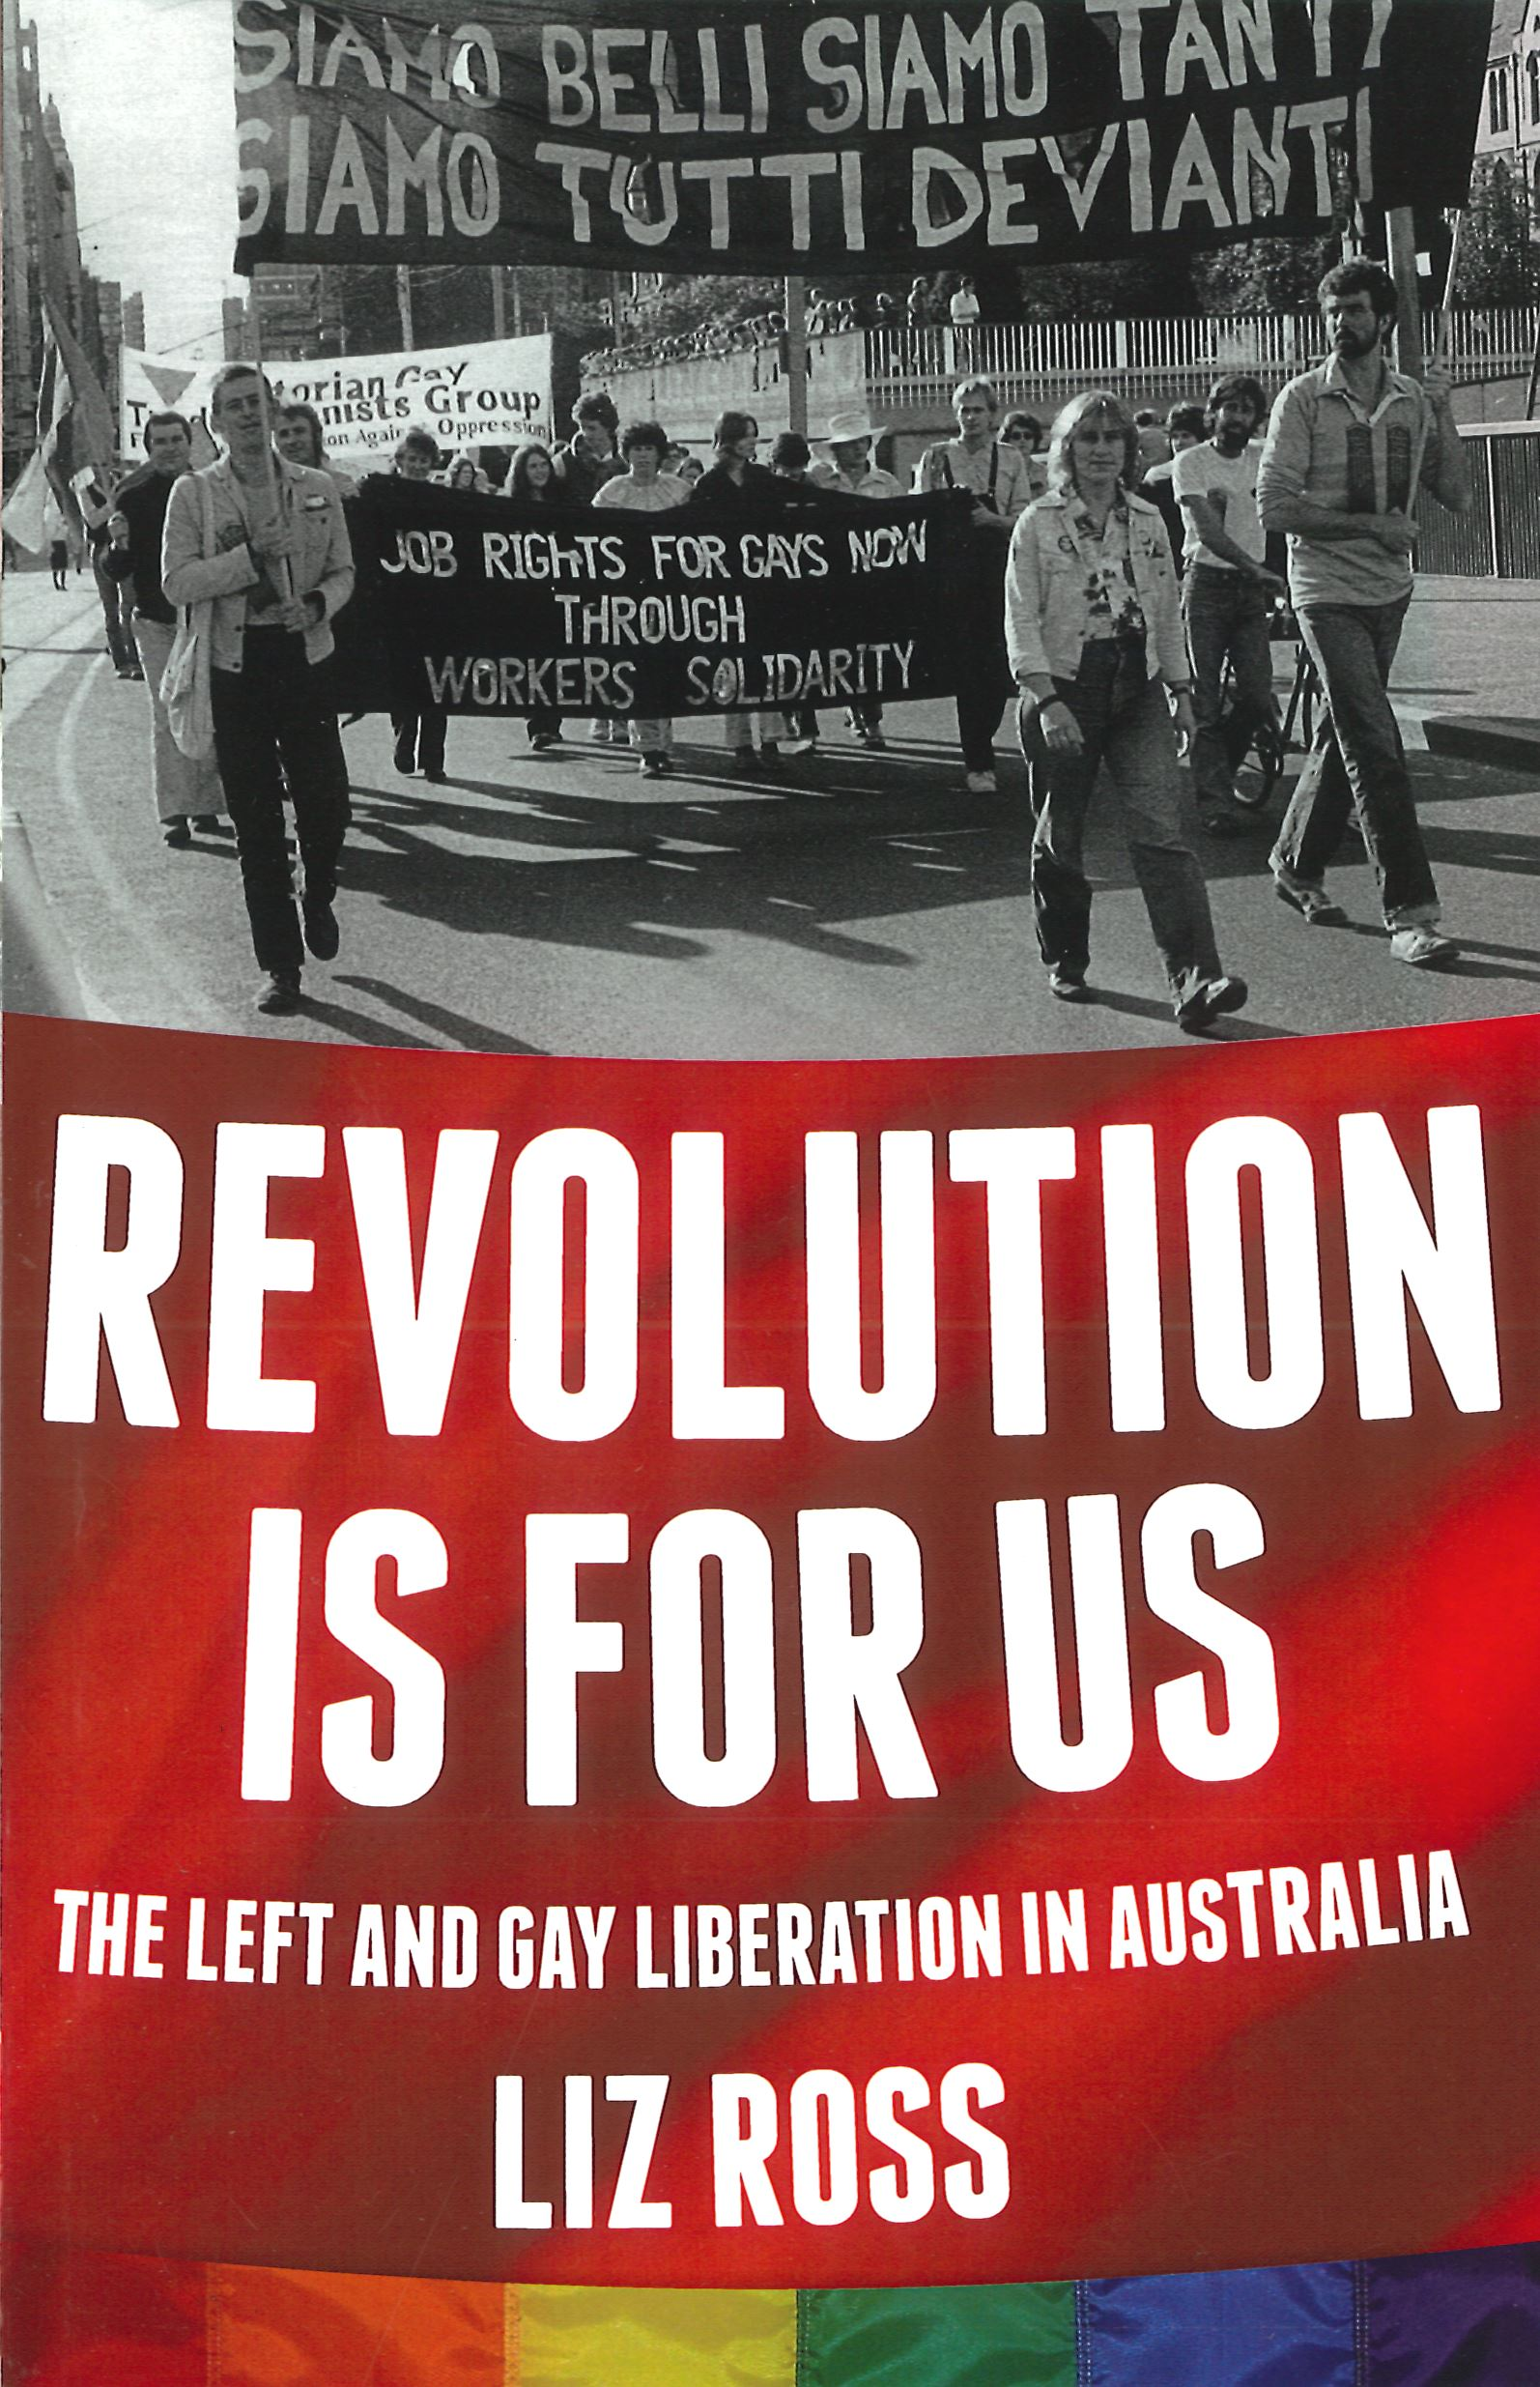 Revolution is for us : the left and gay liberation in Australia / Liz Ross (Melbourne, Vic : Interventions, 2013)